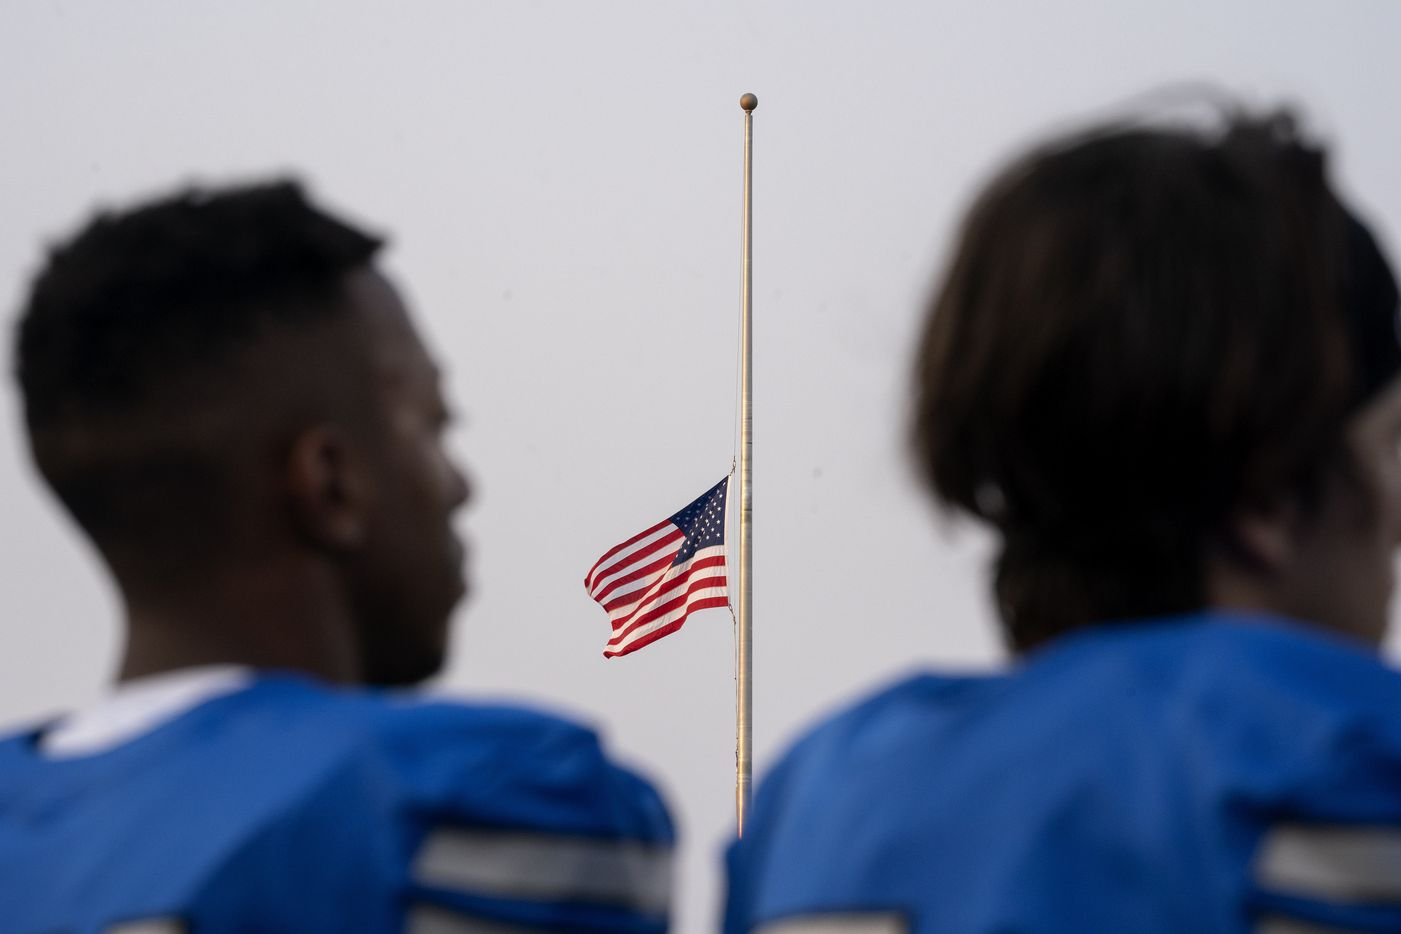 The American flag flies at half staff to commemorate the 20th anniversary of the 9/11 terrorist attacks as Plano West players stand for the national anthem before a high school football game against Little Elm on Friday, Sept. 10, 2021 at John Clark Stadium in Plano, Texas. (Jeffrey McWhorter/Special Contributor)